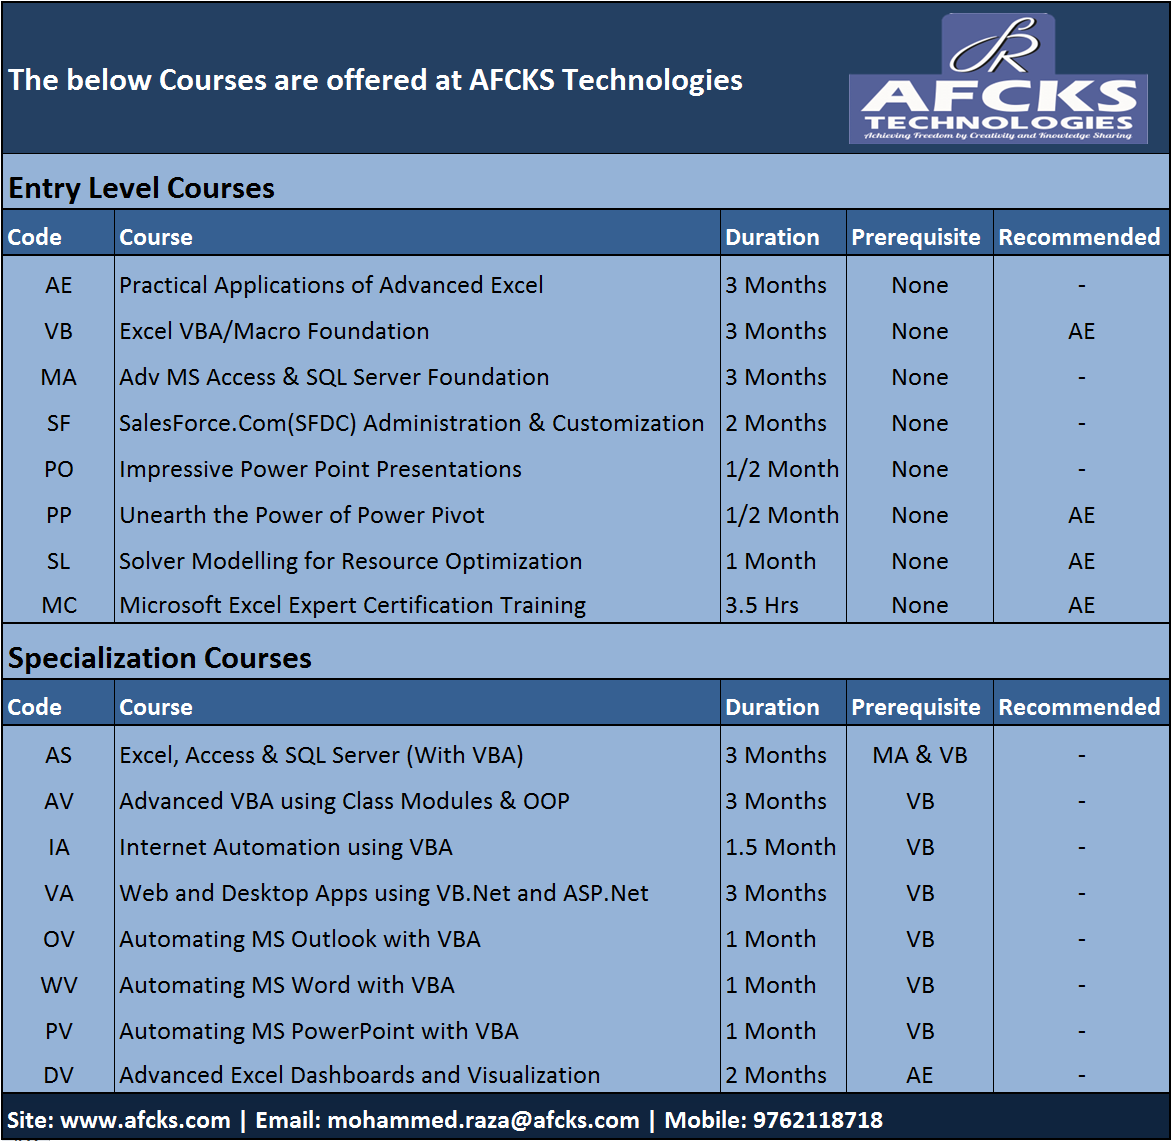 Courses Offered Afcks Technolgies